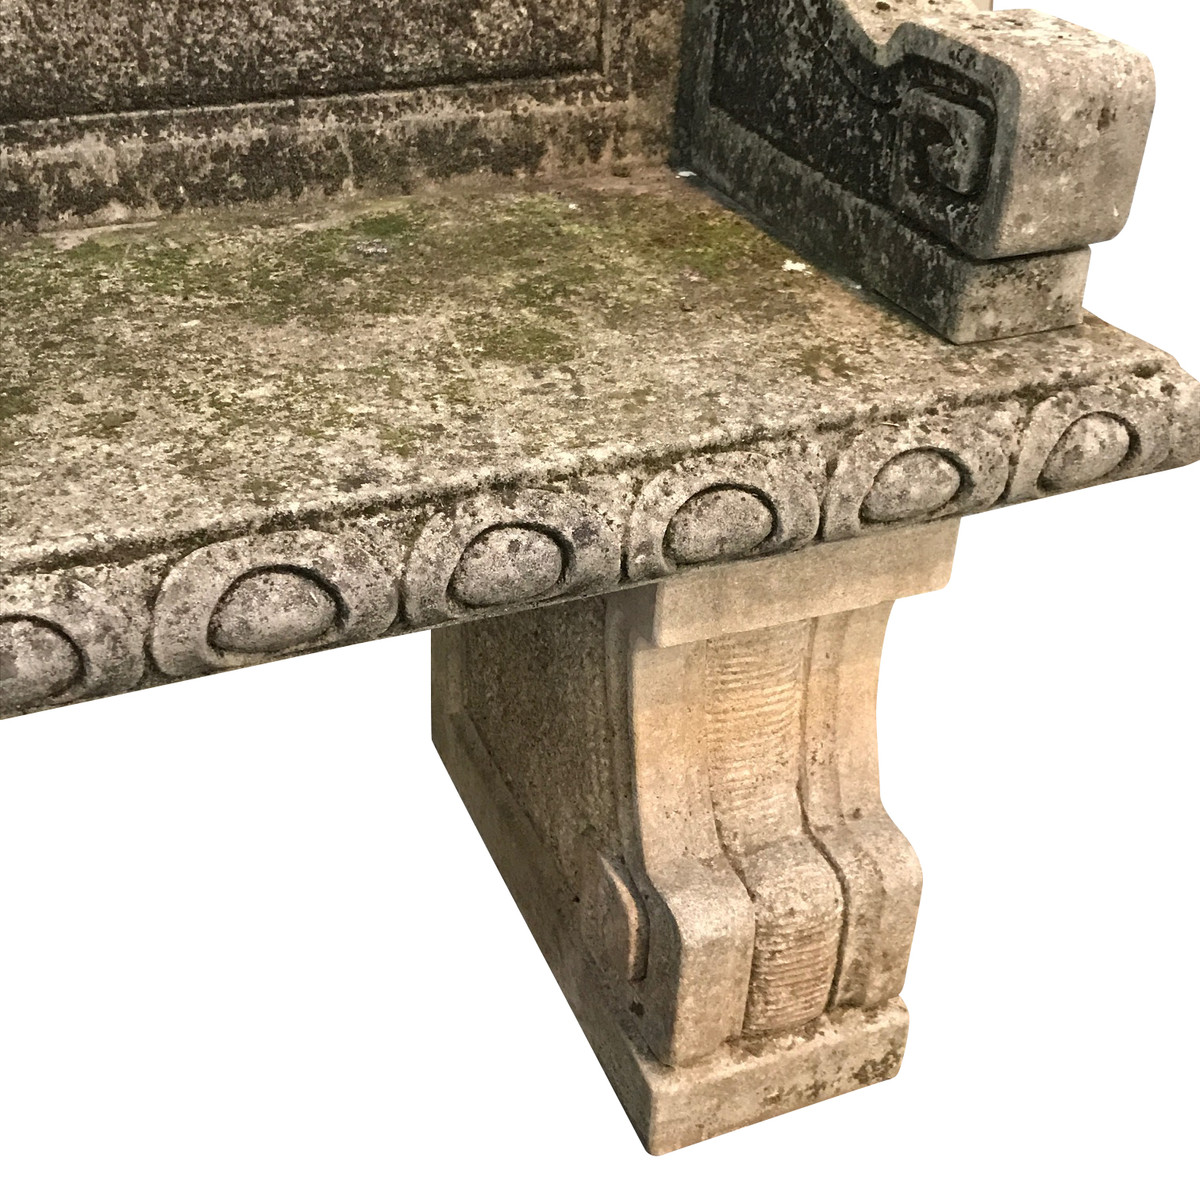 Groovy Balsamo Antiques 1920S Italian Vicenza Stone Bench With Back Frankydiablos Diy Chair Ideas Frankydiabloscom